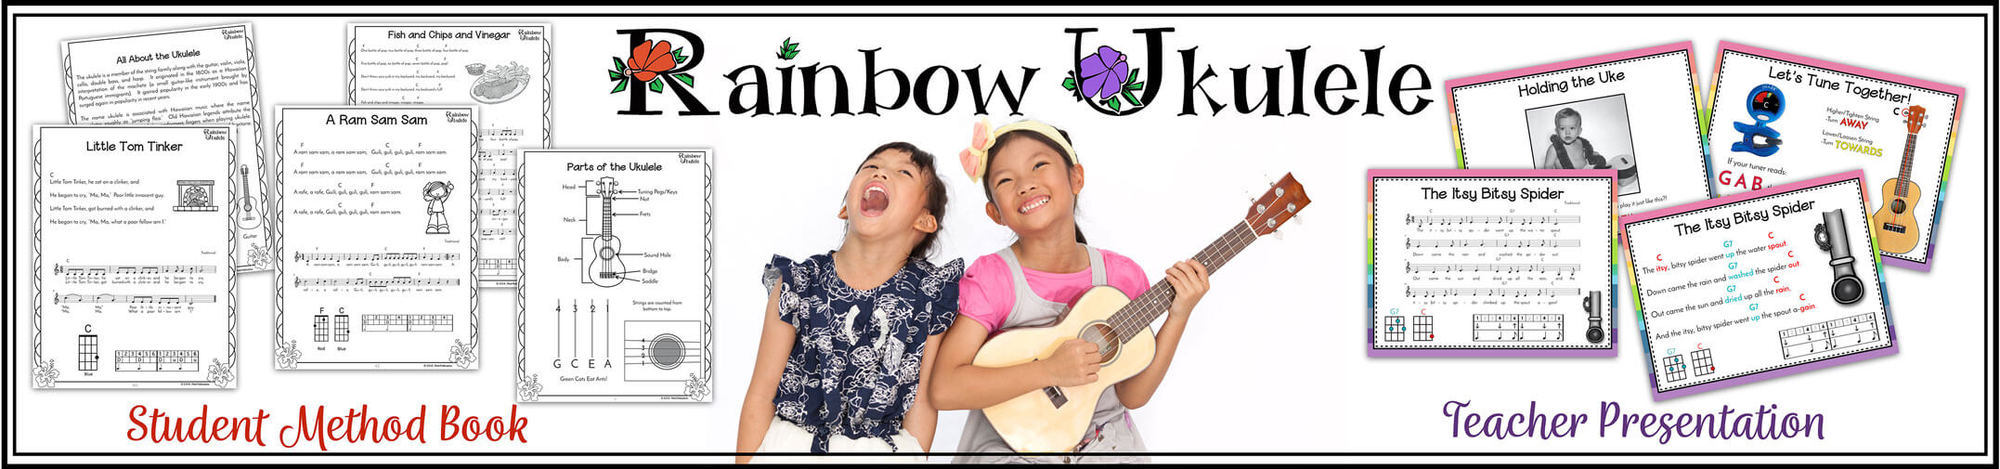 This is a picture of two happy kids playing ukulele with some samples of the ukulele curriculum Rainbow Ukulele